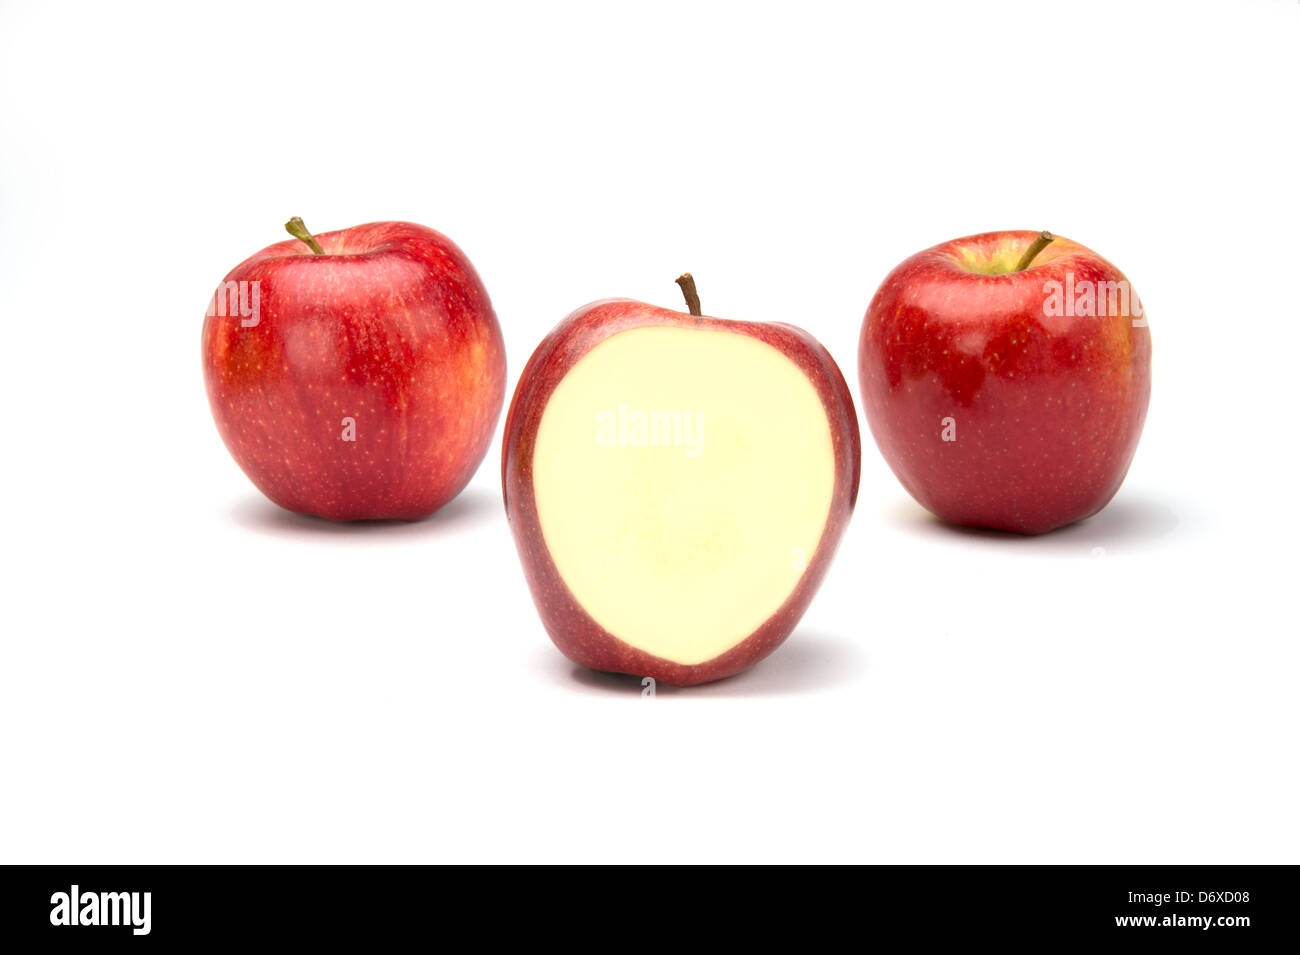 Three apples on white with the center one cut open. - Stock Image